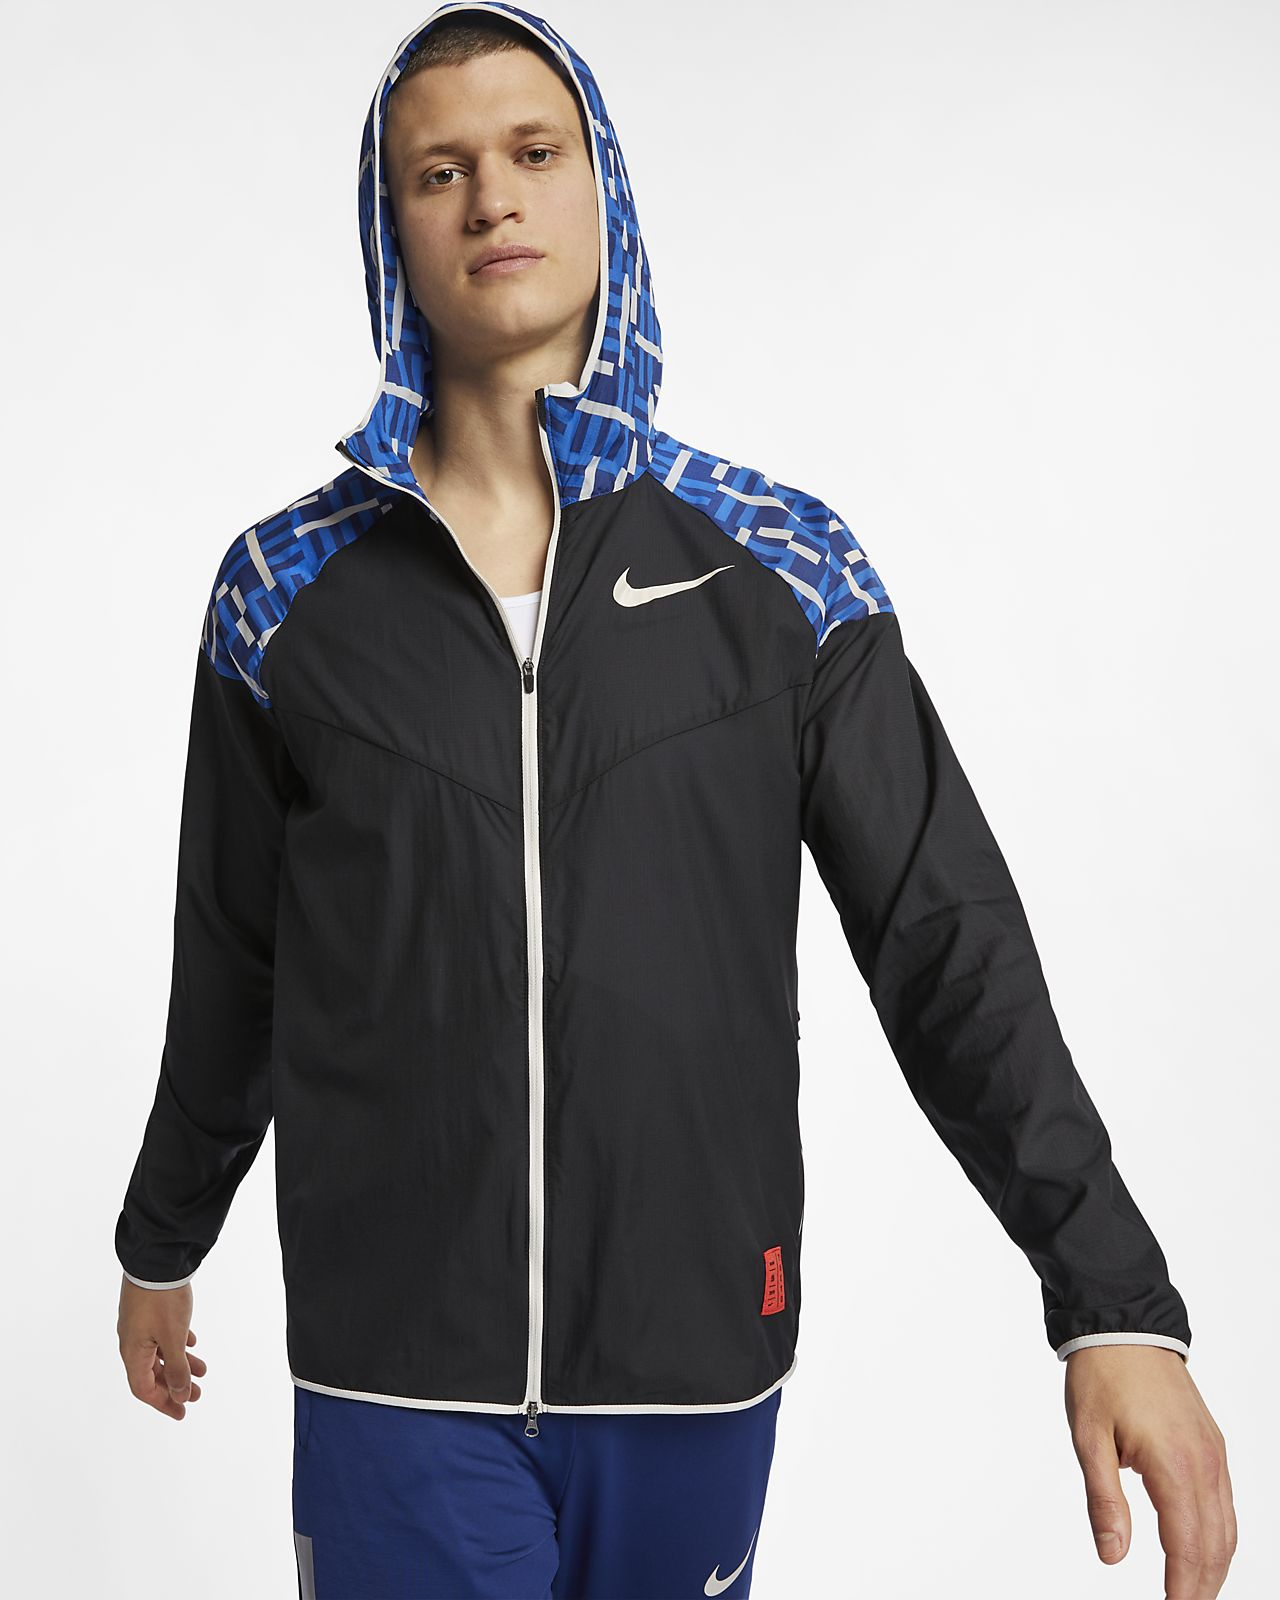 0044114e57 Nike Windrunner Men s Running Jacket. Nike.com NL